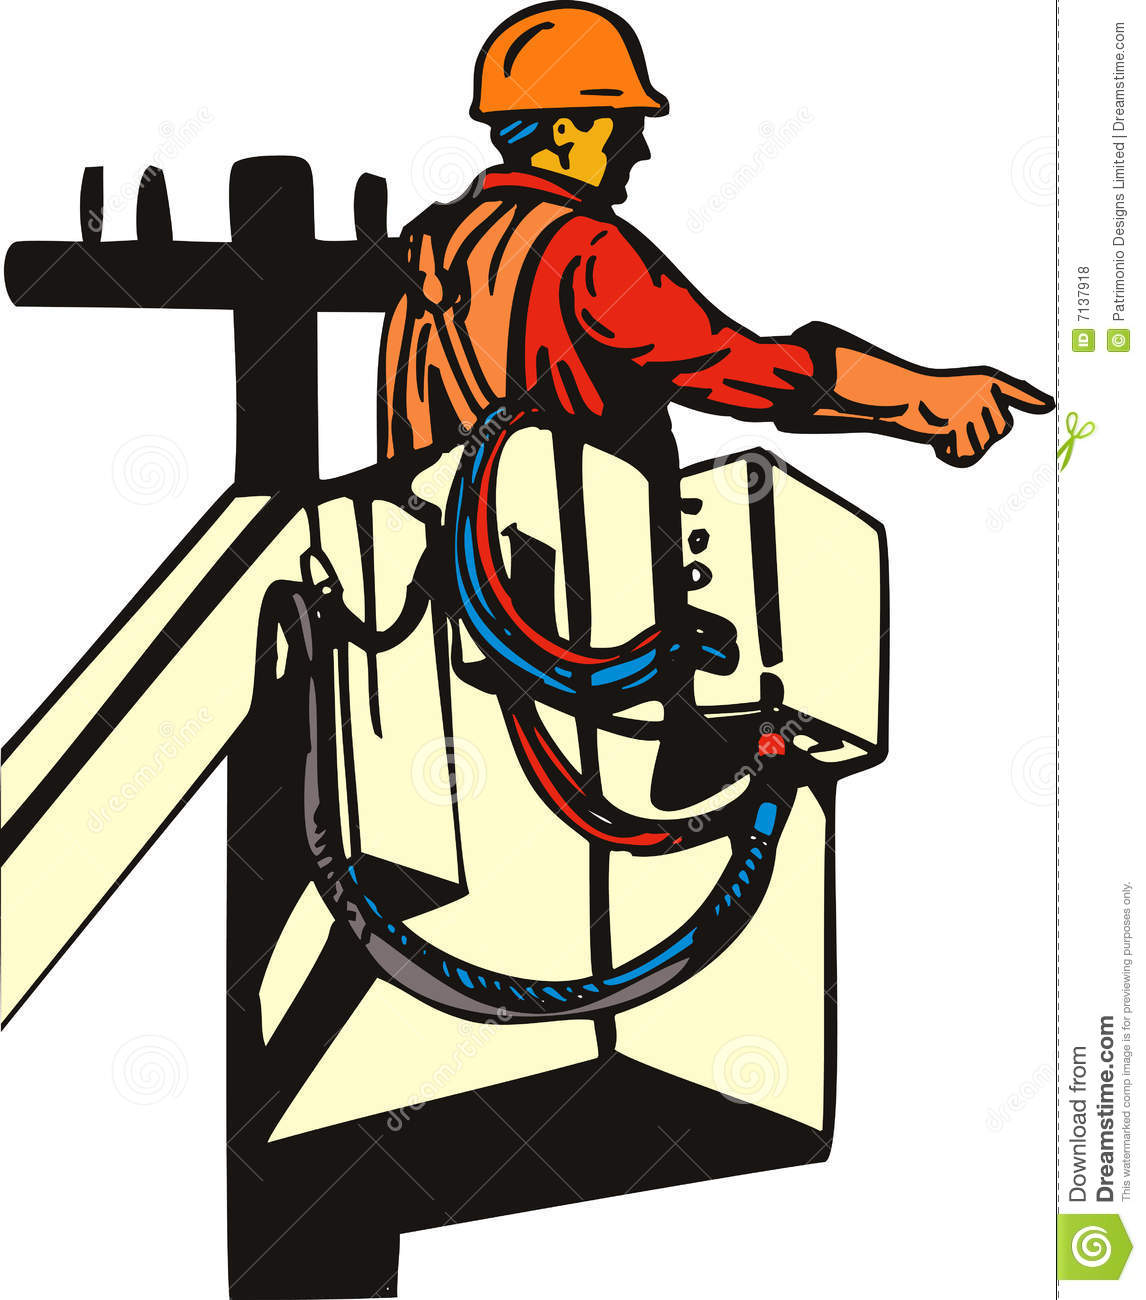 electricians at work clip art - photo #29